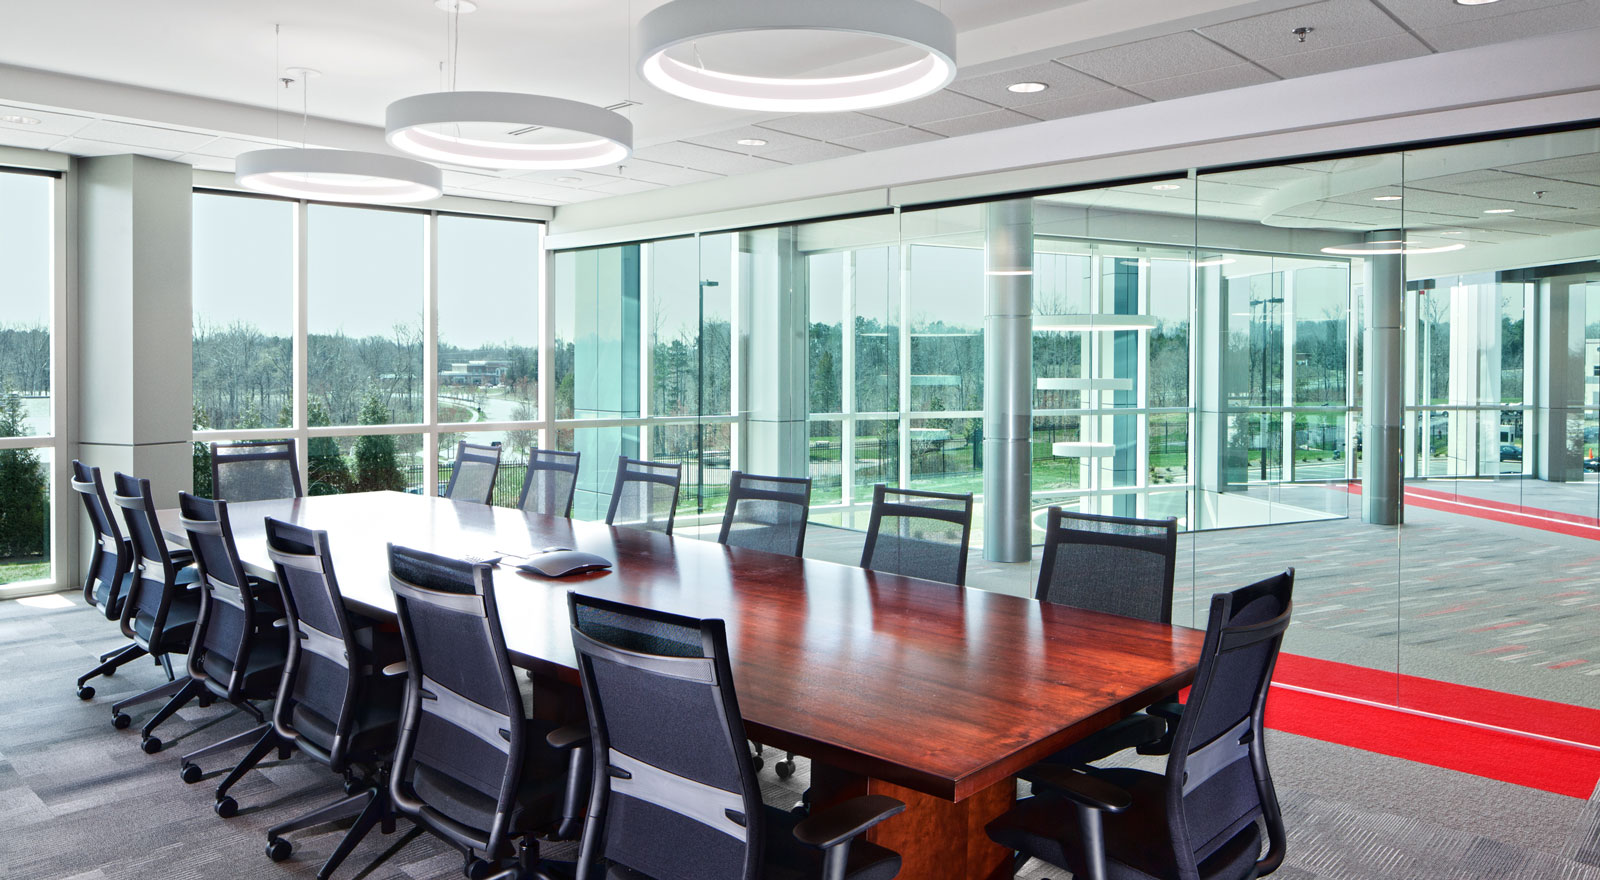 business interiors by staples charlotte nc ForBusiness Interiors By Staples Charlotte Nc